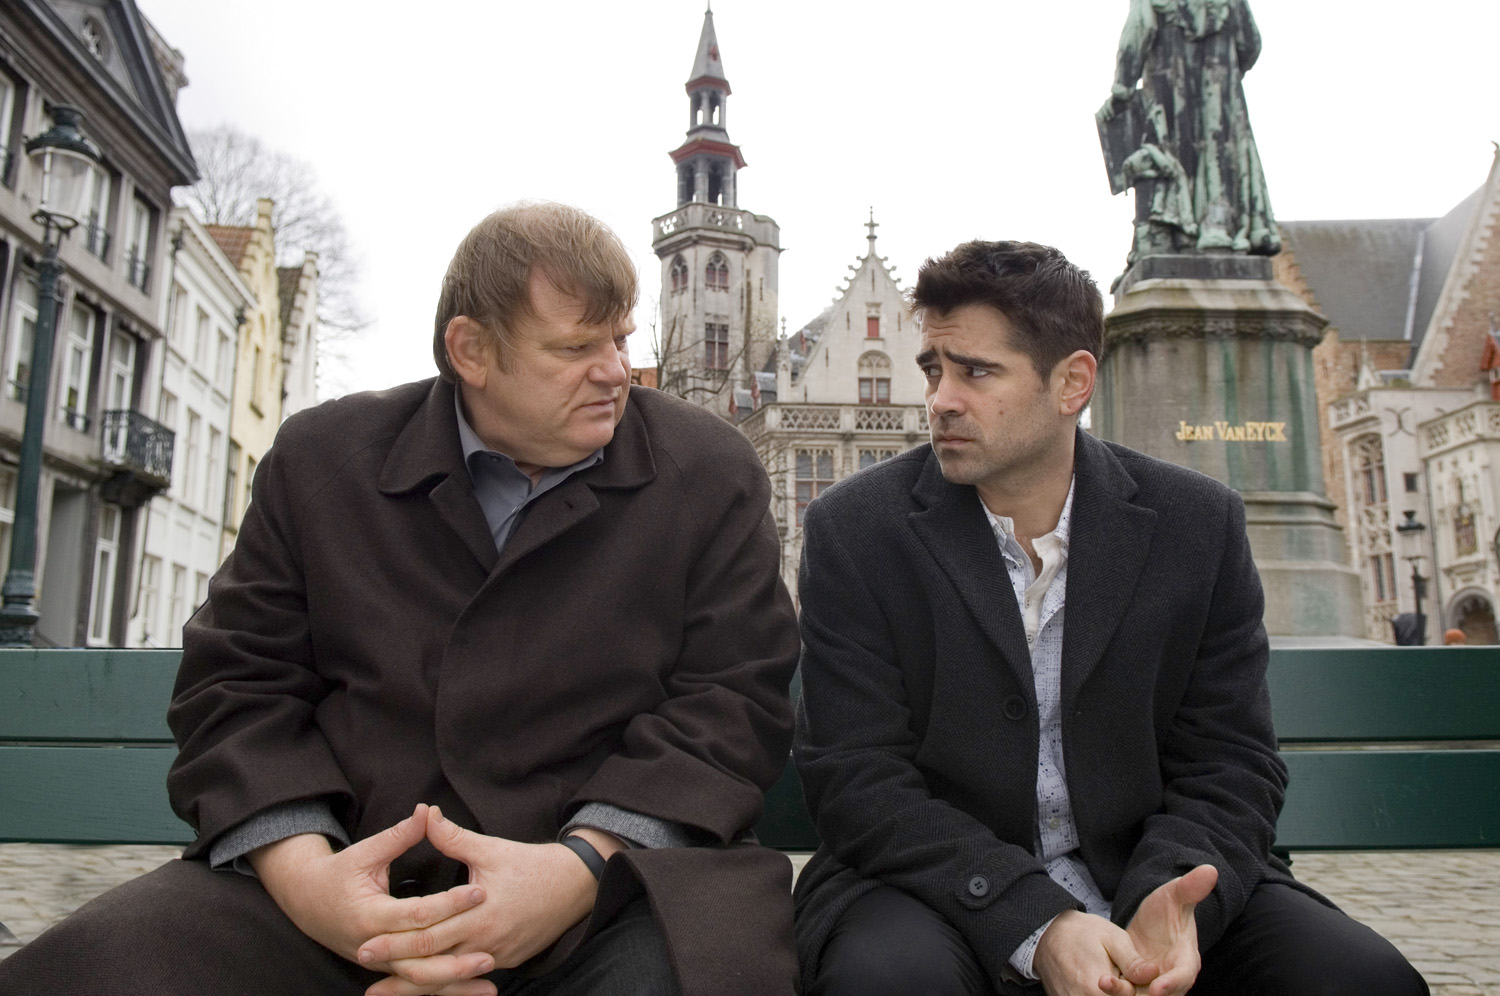 in bruges The 25 Greatest Christmas Movies of All Time